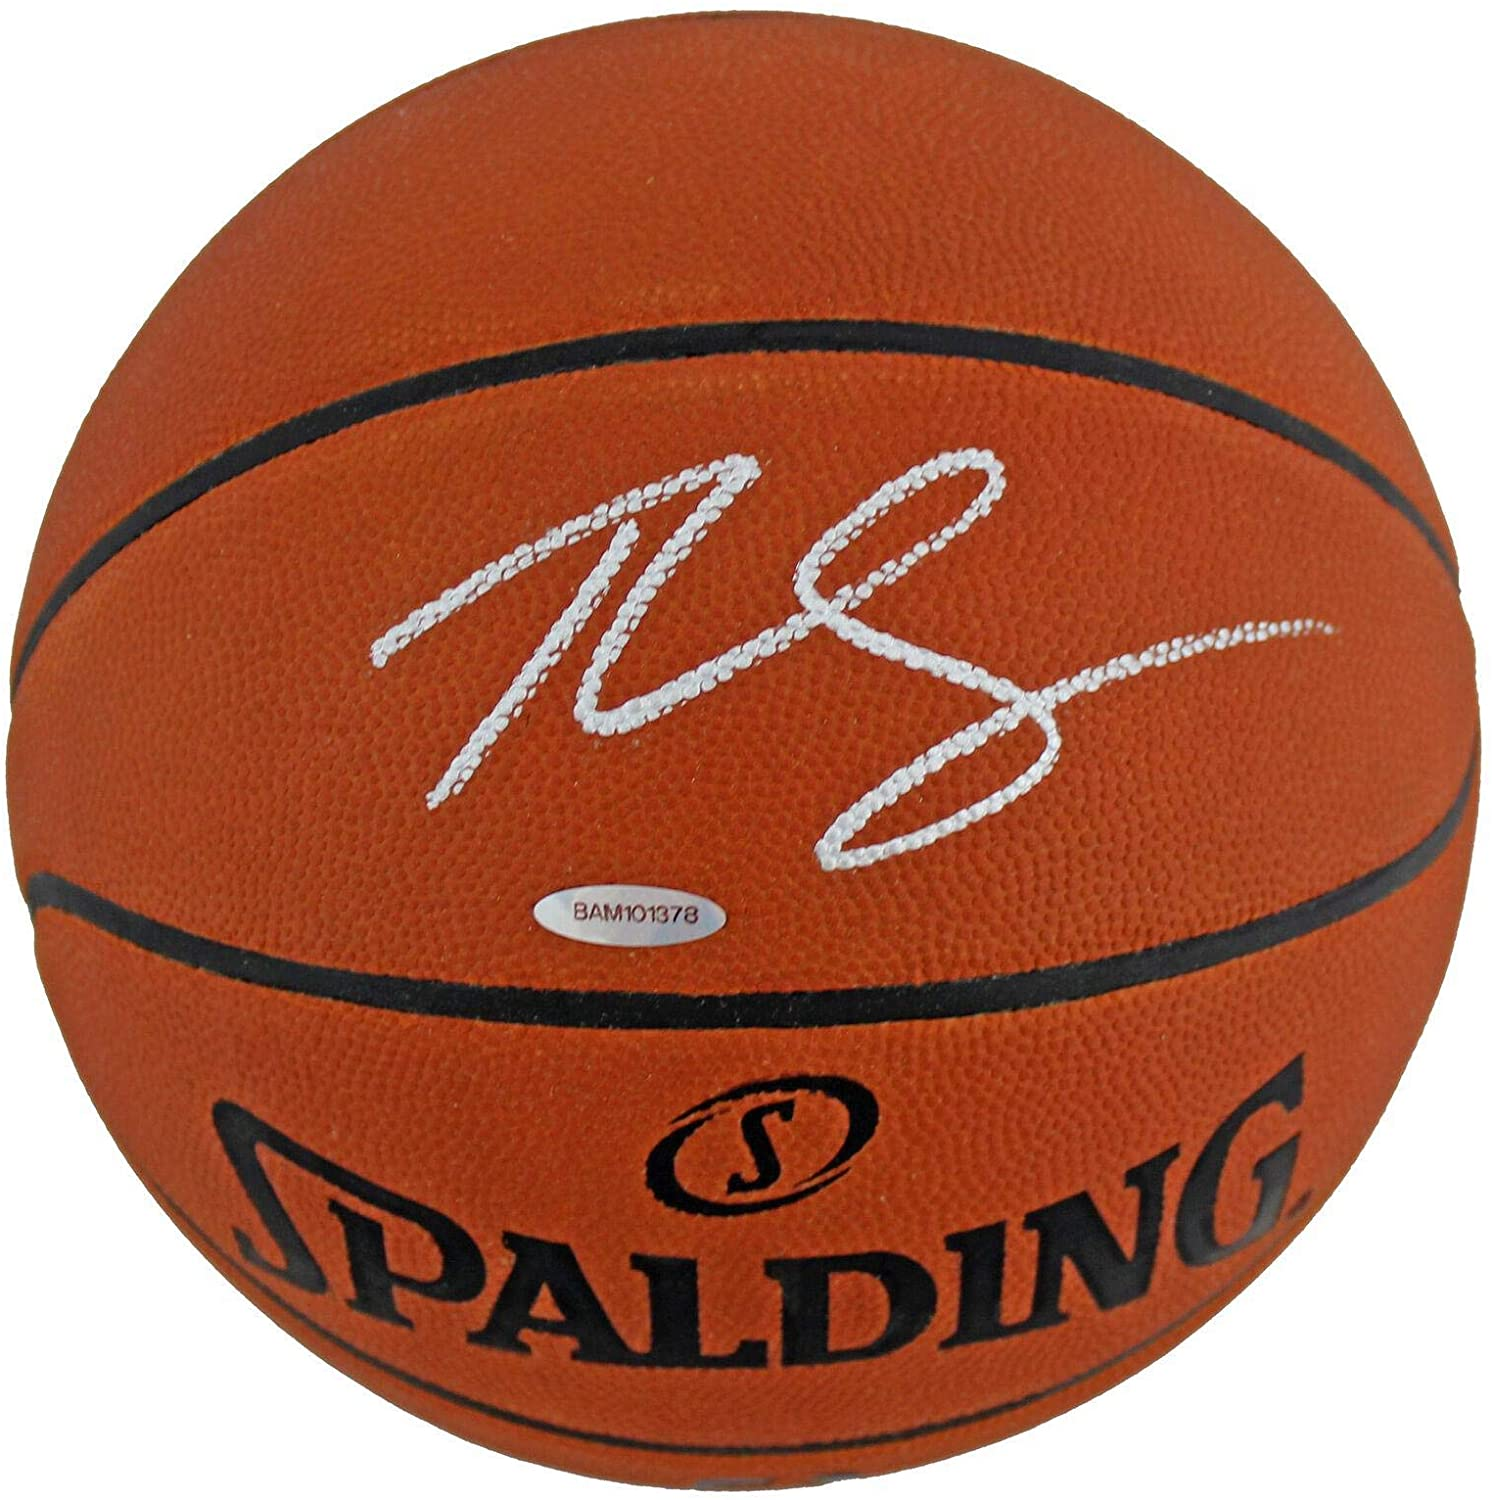 Ben Simmons Autographed Basketball - Official Game #BAM101378 - Upper Deck Certified - Autographed Basketballs